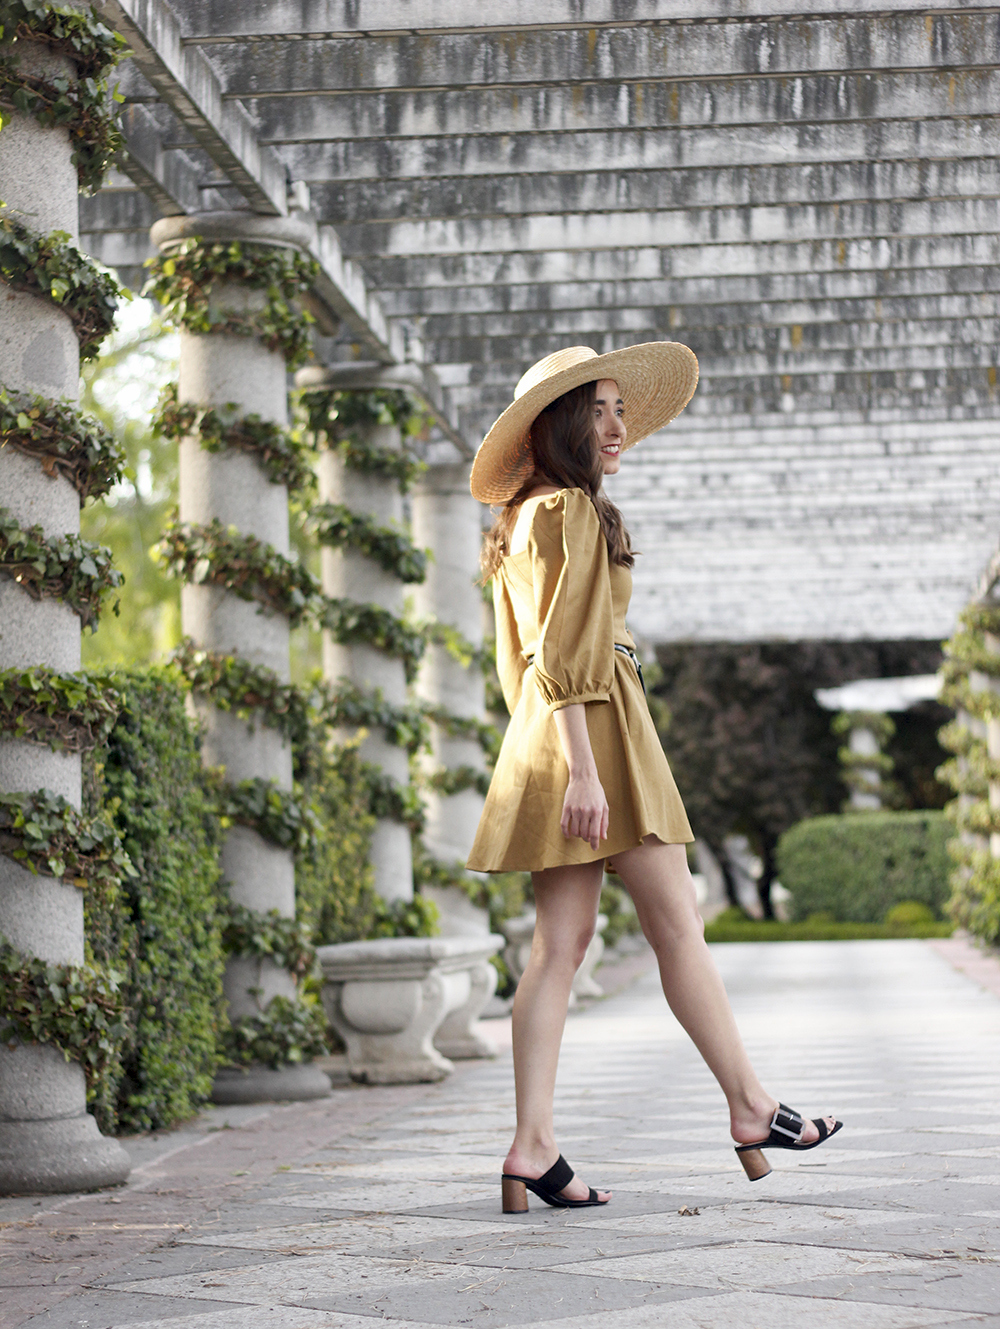 khaki linen dress black sandals straw hat street style spring outfit4